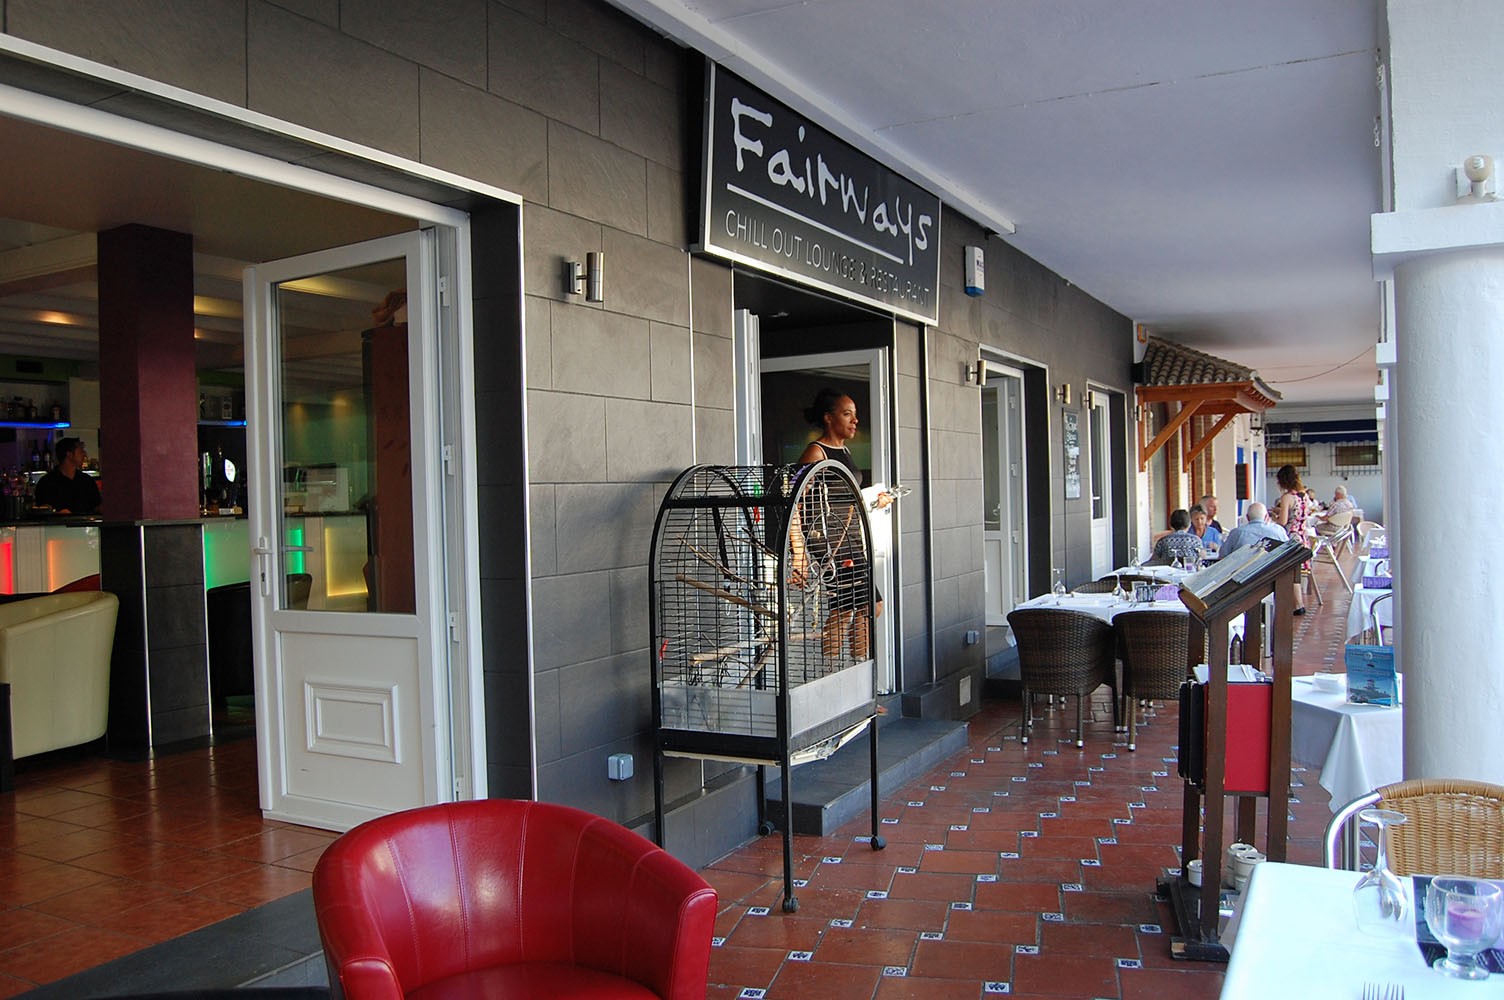 Fairways Restaurant and Chill Out Lounge on Villamartin Plaza